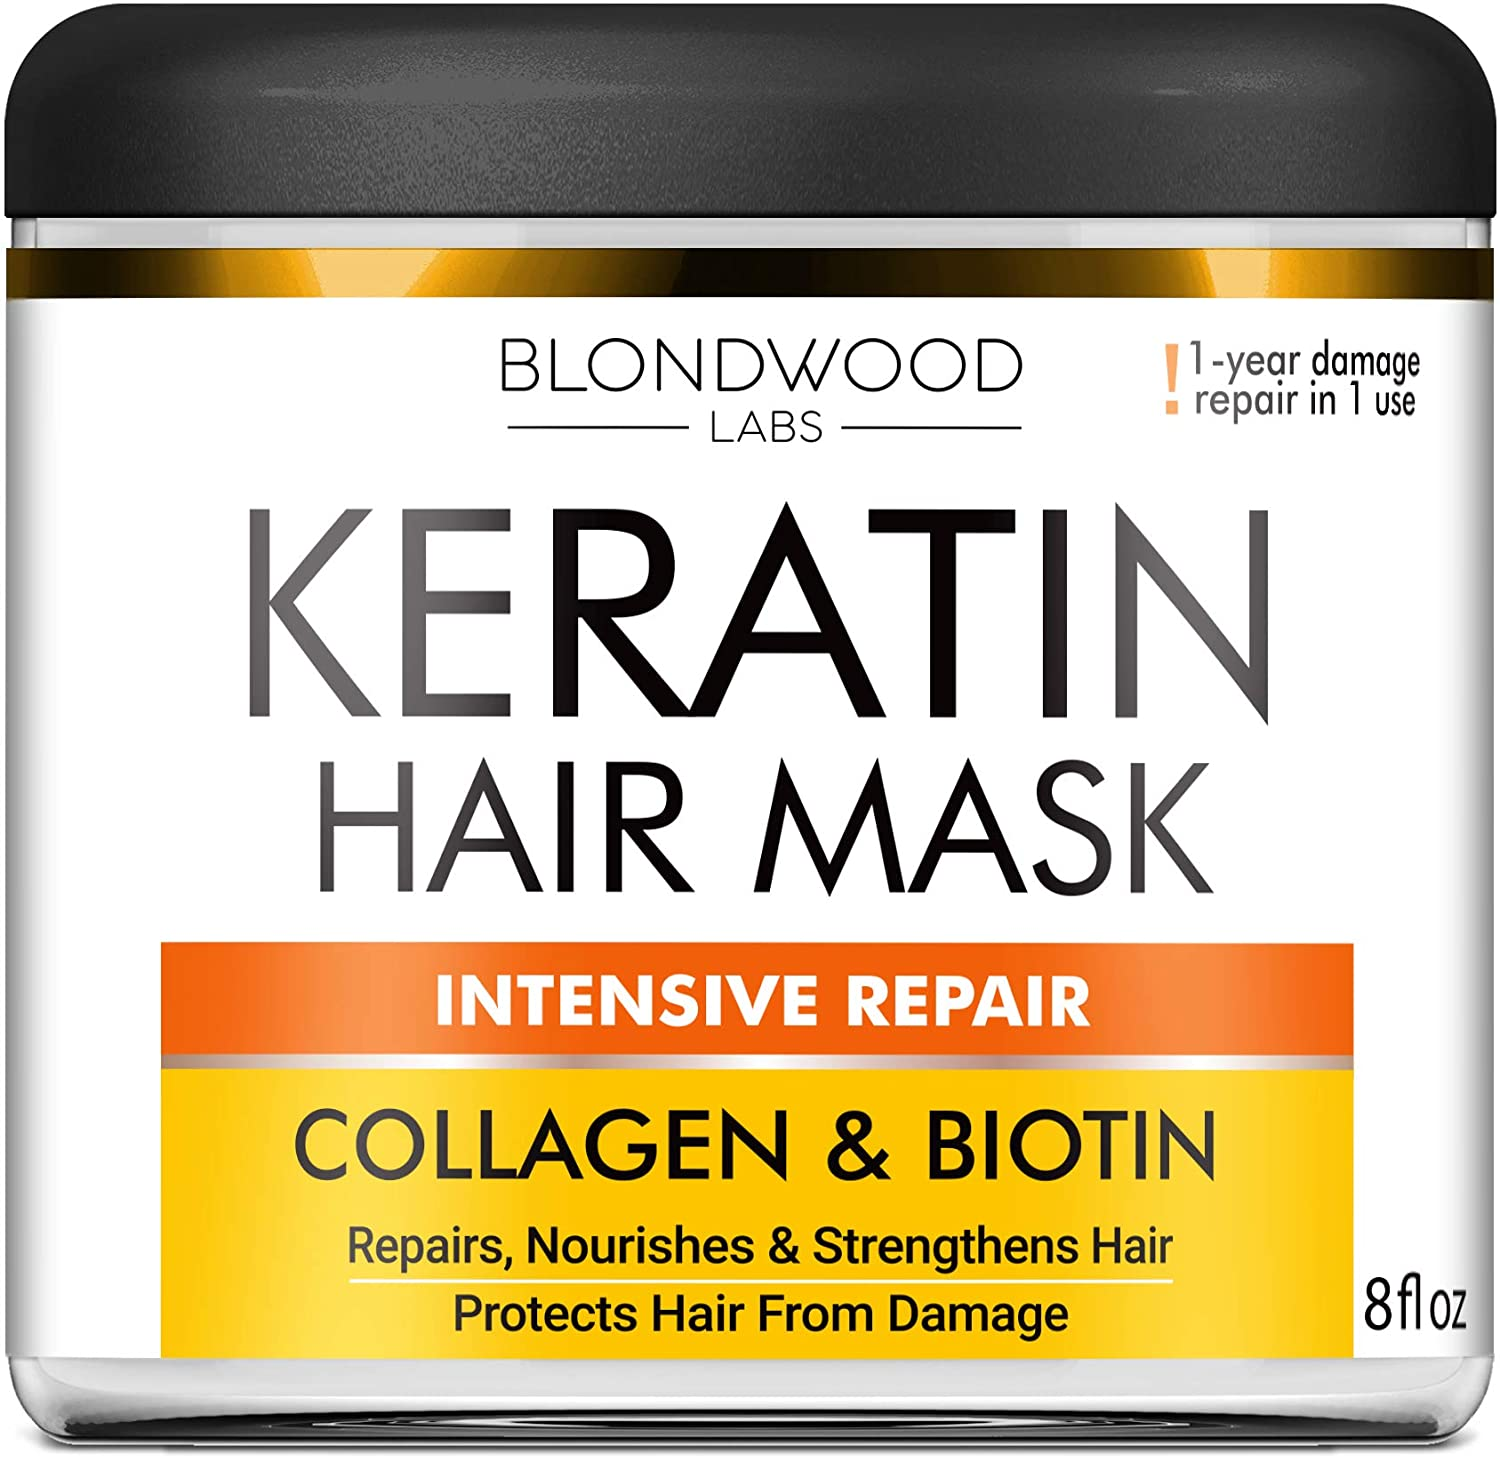 Biotin Collagen Keratin Treatment - Keratin Treatment for Dry & Damaged Hair - Collagen Hair Vitamin Complex - Best Hair Repair for Women & Men - Hair Nourishment with Panthenol - 8 oz